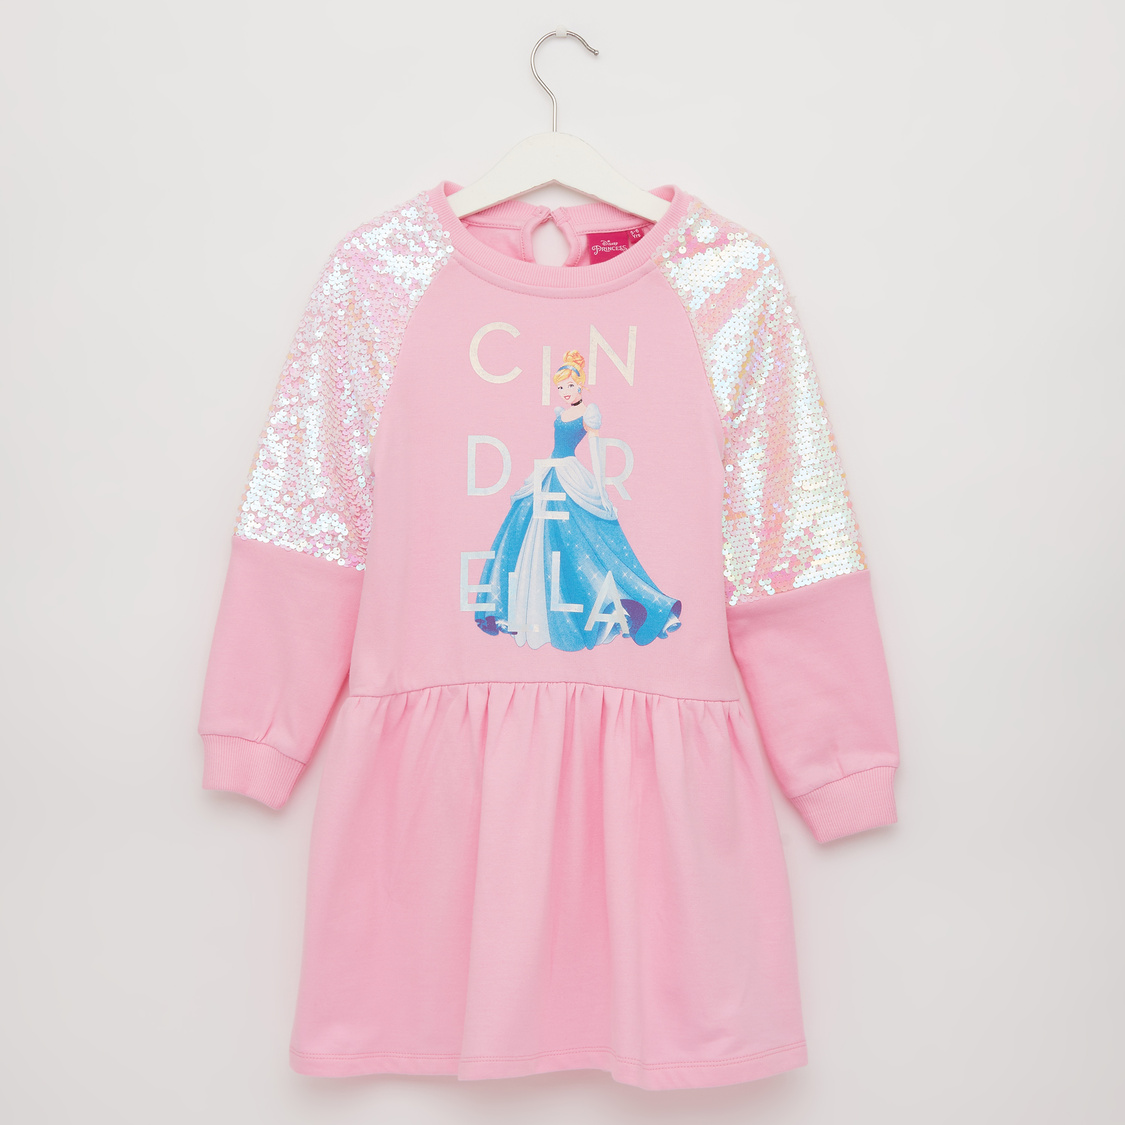 Embellished Cinderella Print Dress with Round Neck and Long Sleeves